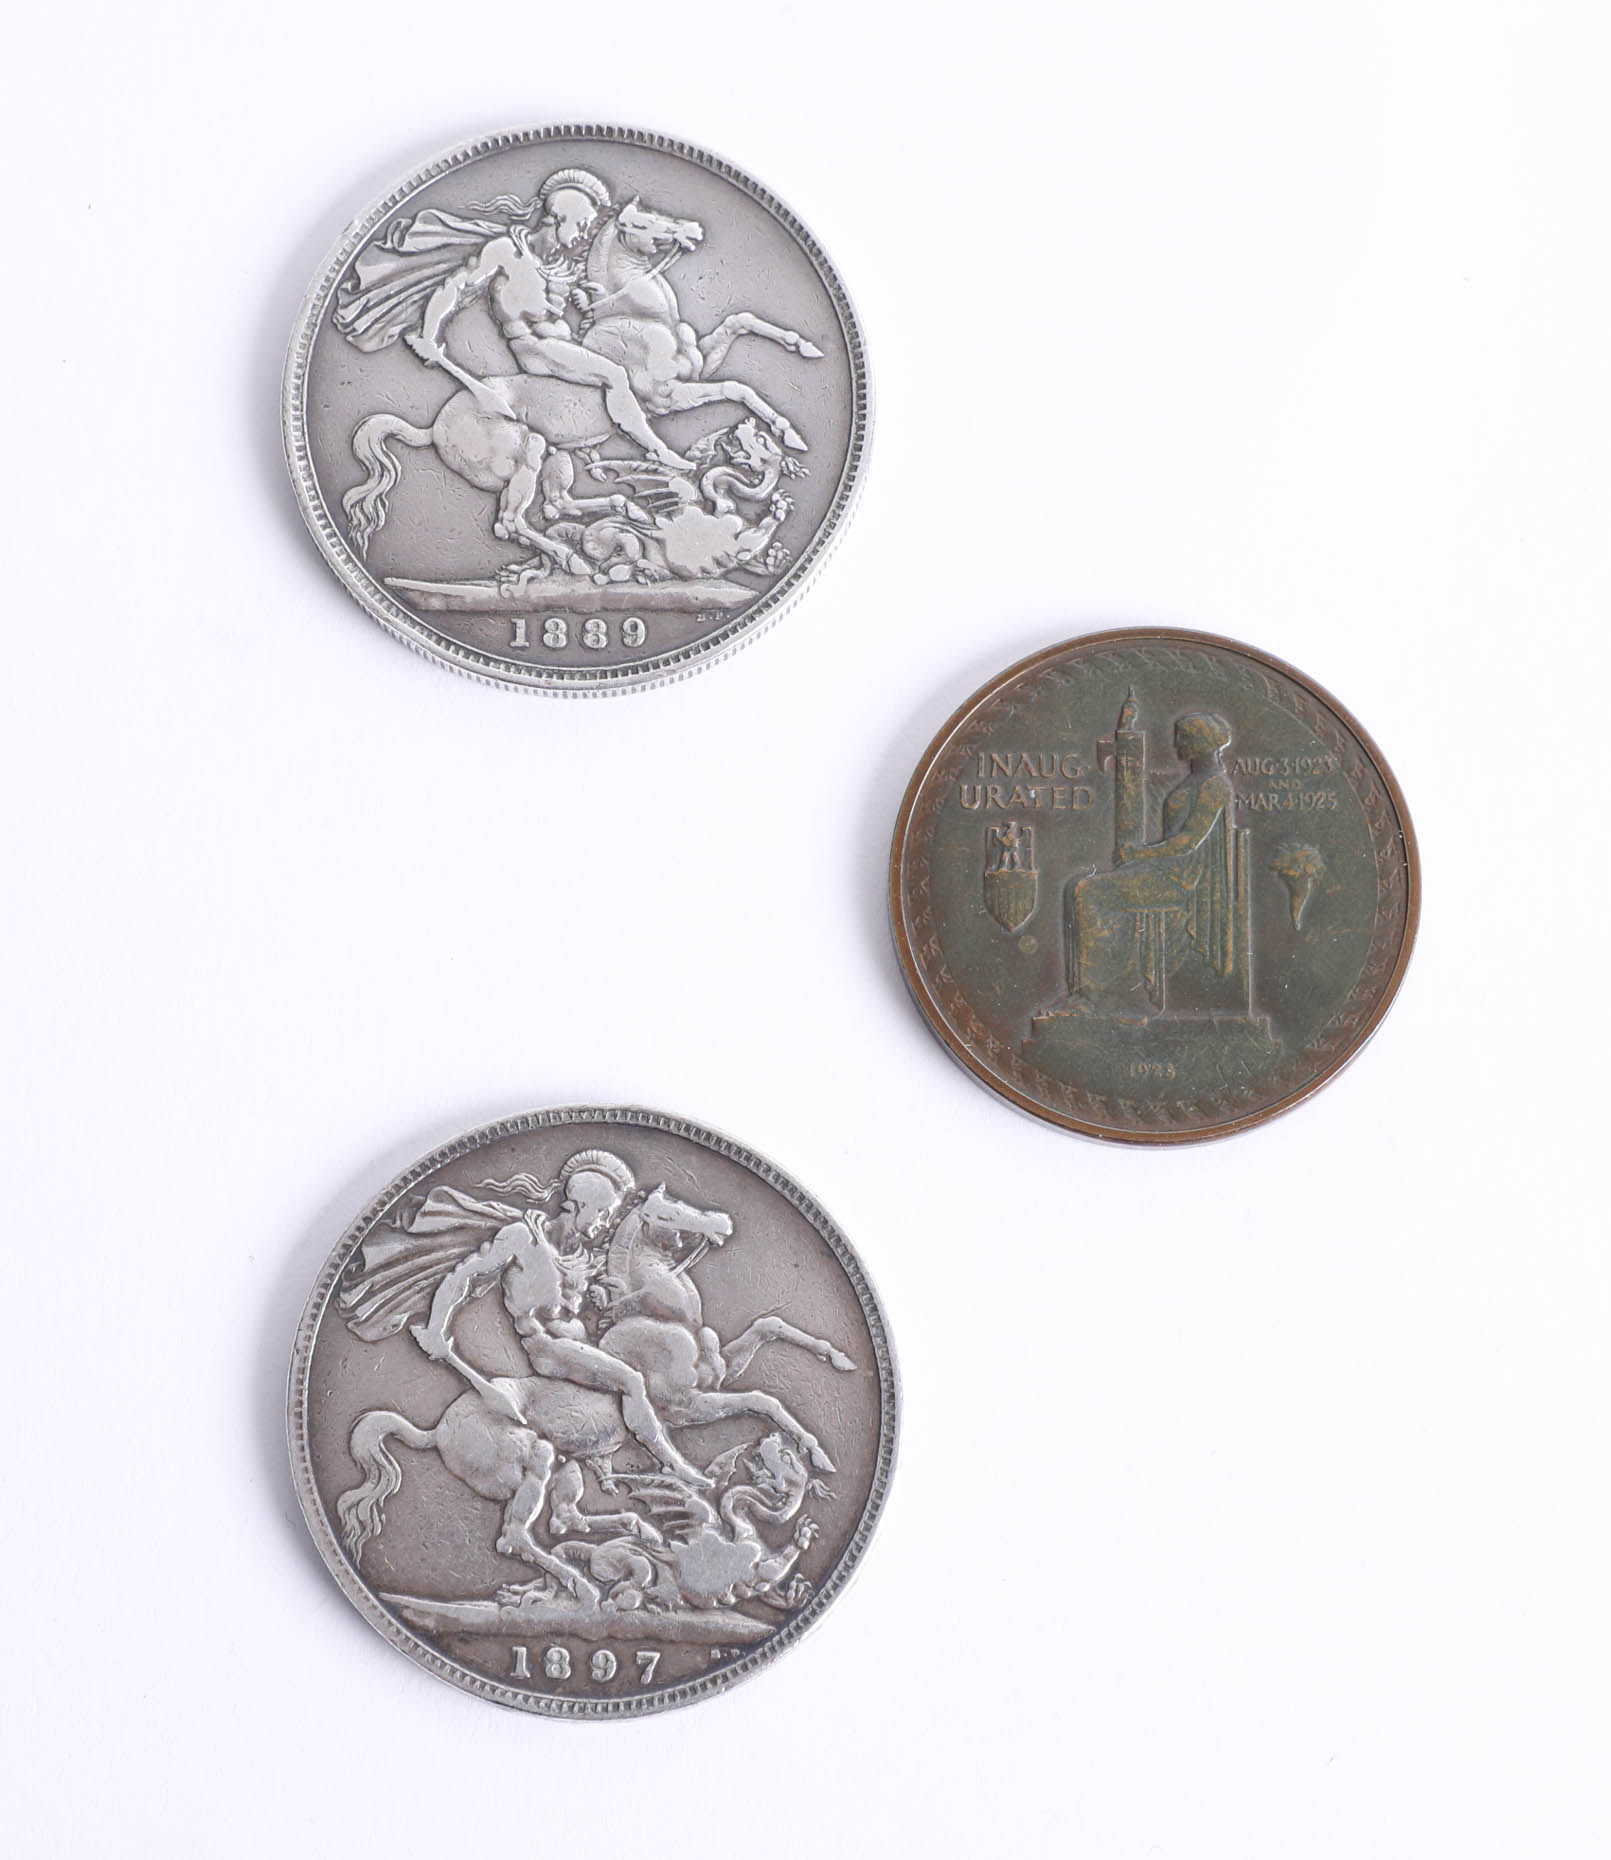 Two Victorian silver crowns dated 1889 and 1897 together with a 1928 Calvin Coolidge coin (3).